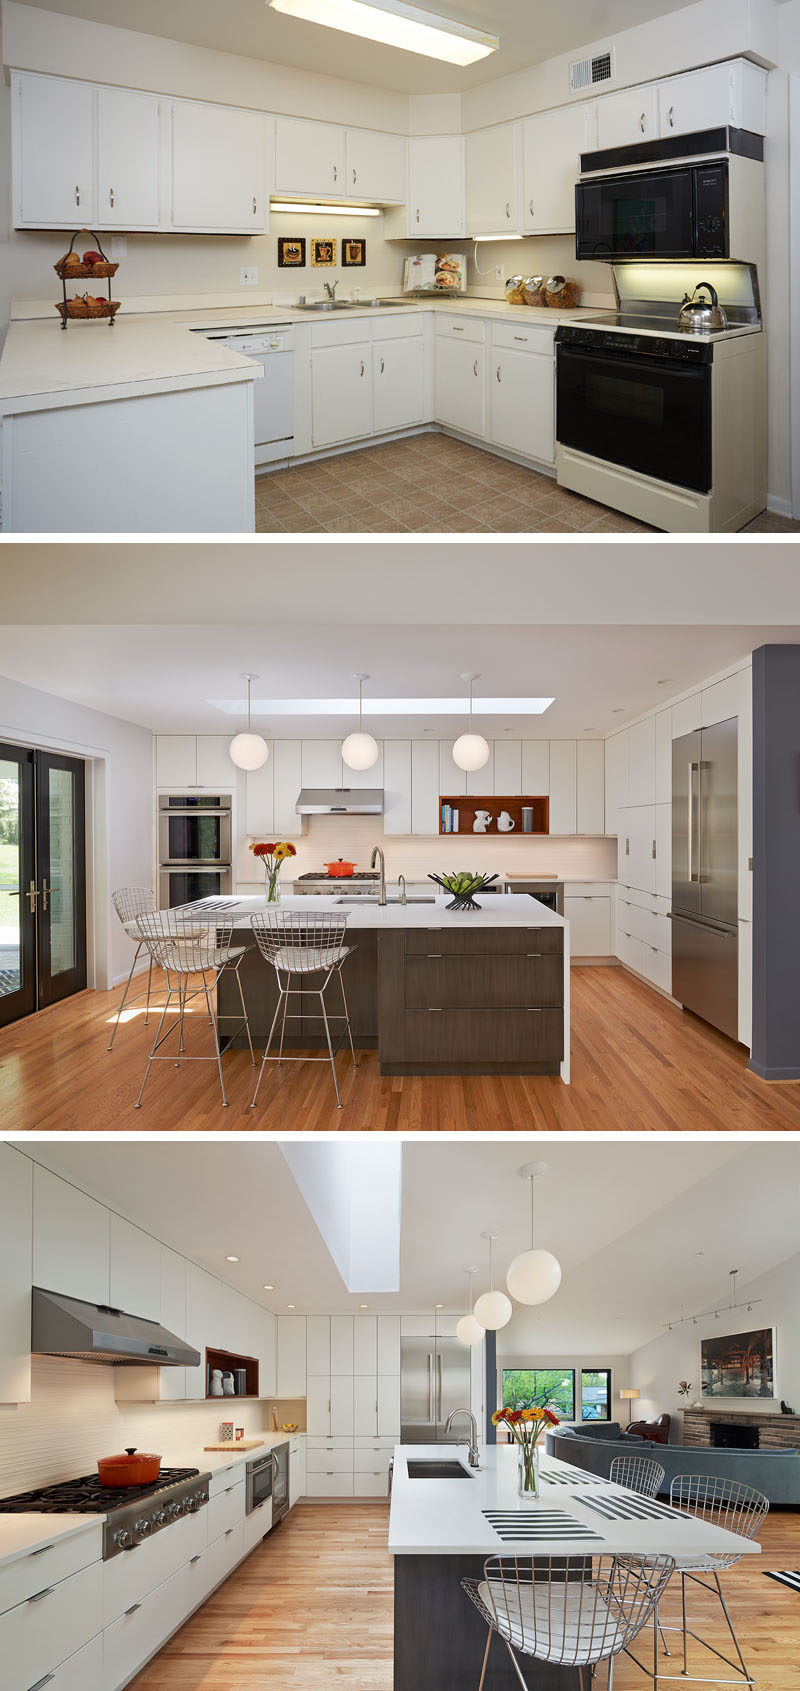 This outdated kitchen was transformed into a brighter happier space by opening it up, changing the light fixtures, upgrading the appliances, and adding a central island which helps connect the kitchen to the other areas in the home.